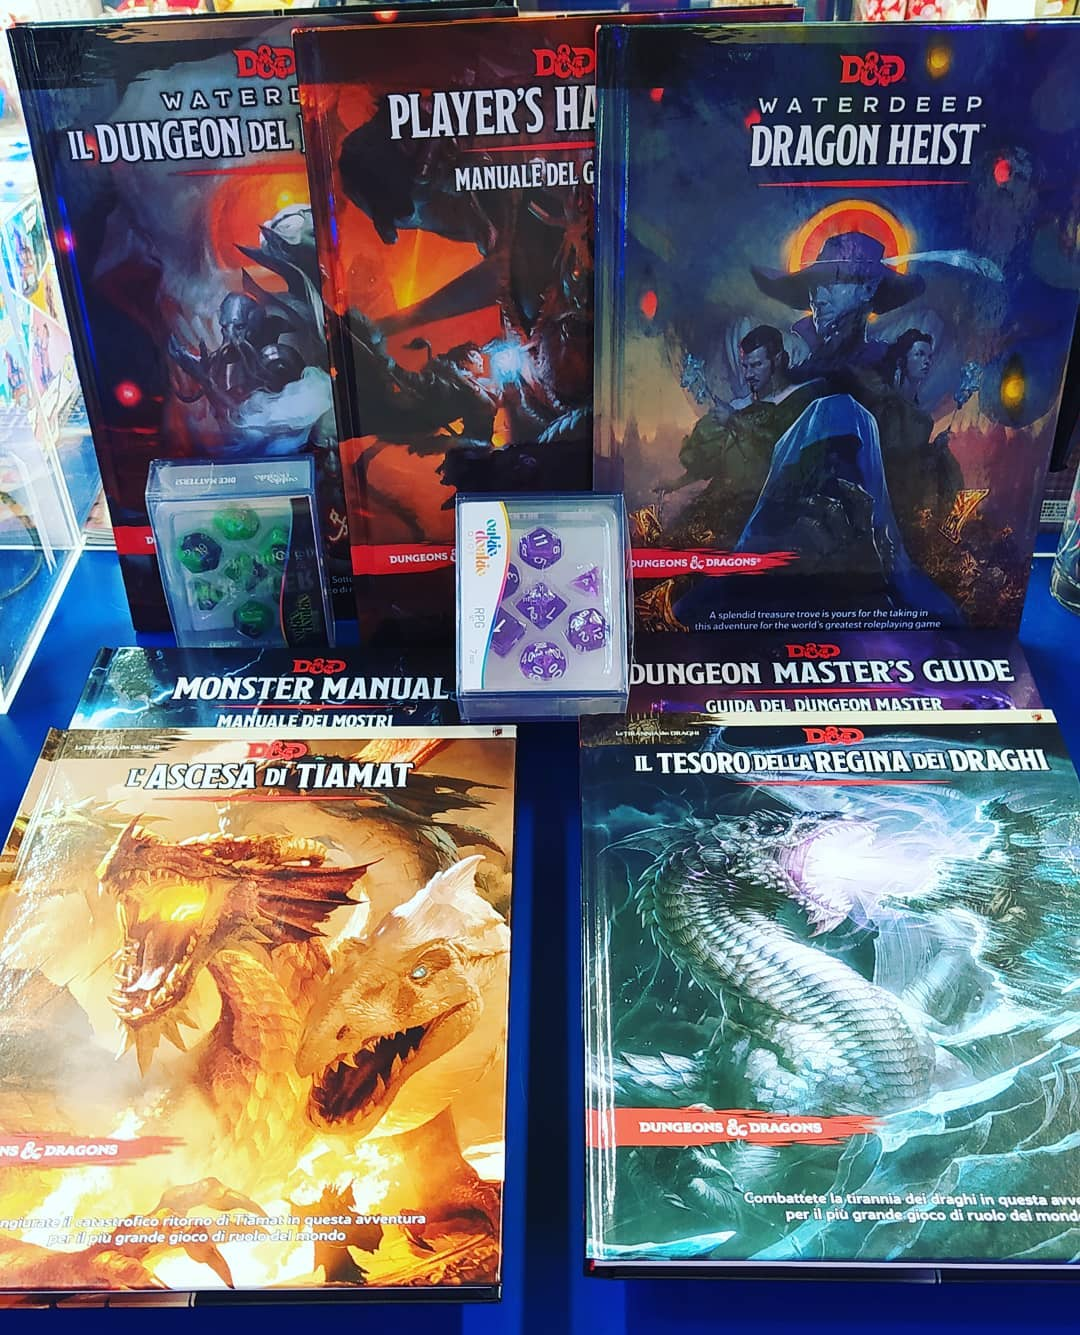 Dungeon & dragons manuali per tutti i gusti